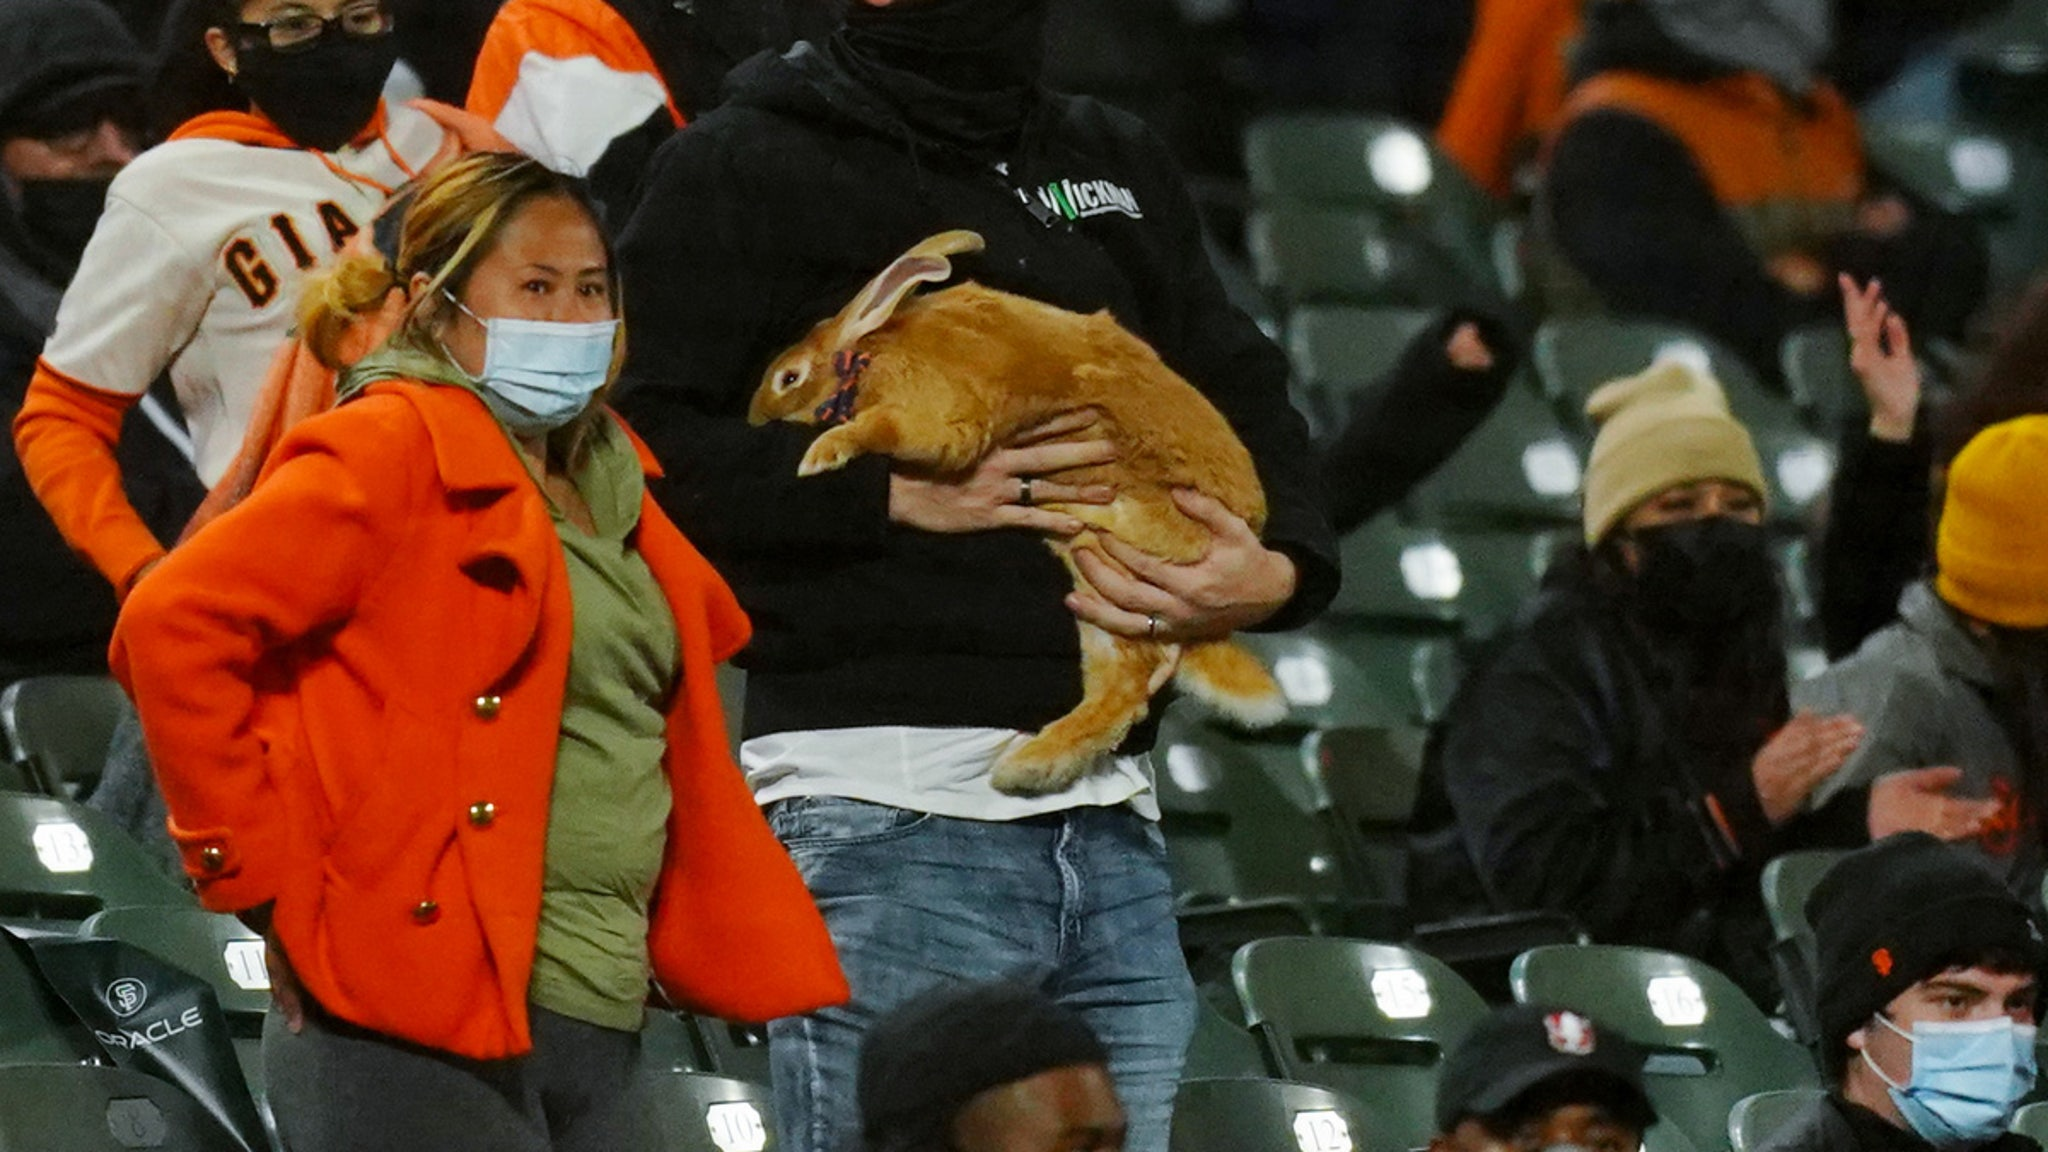 SF Giants Fans Bring Therapy Bunny To Game, Most Adorable Spectator Ever? thumbnail